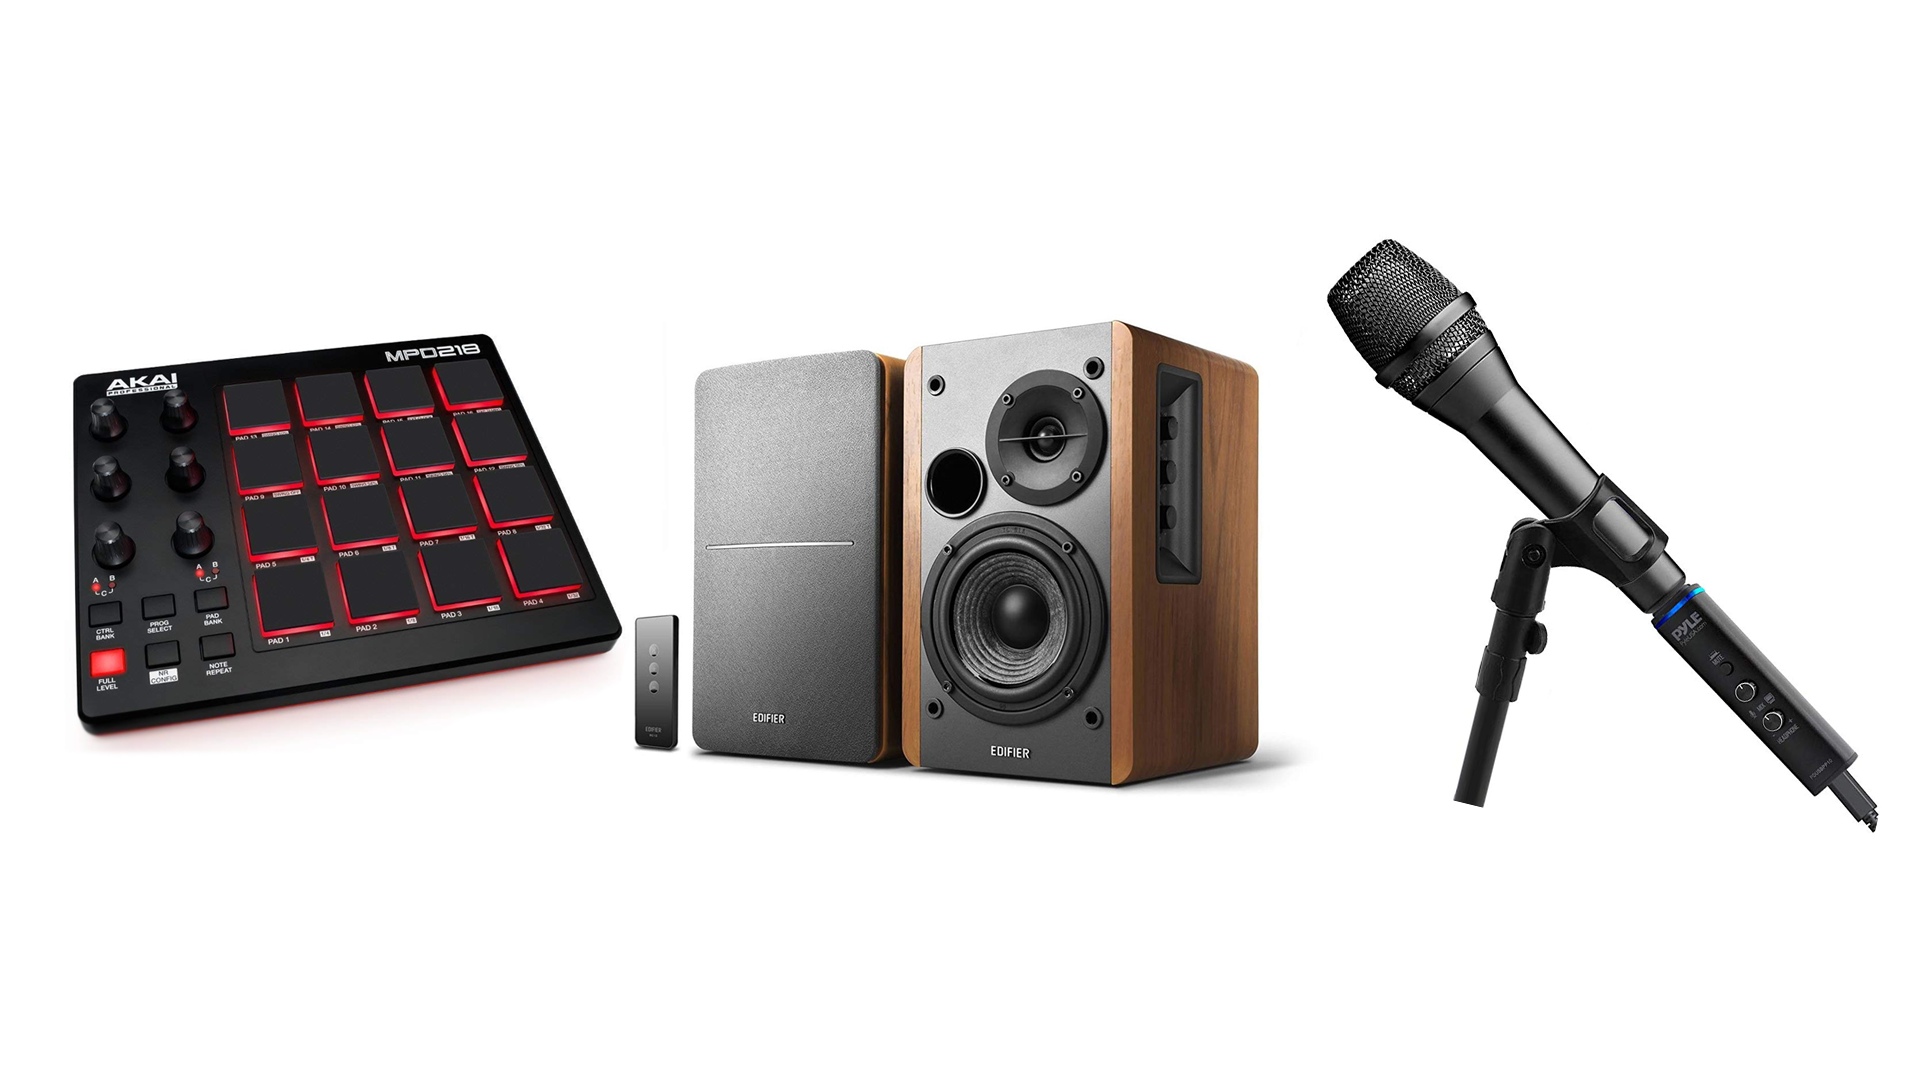 The AKAI MPD218, the Pyle Microphone Adapter, and the Edifier R1280T Bluetooth Bookshelf Speakers